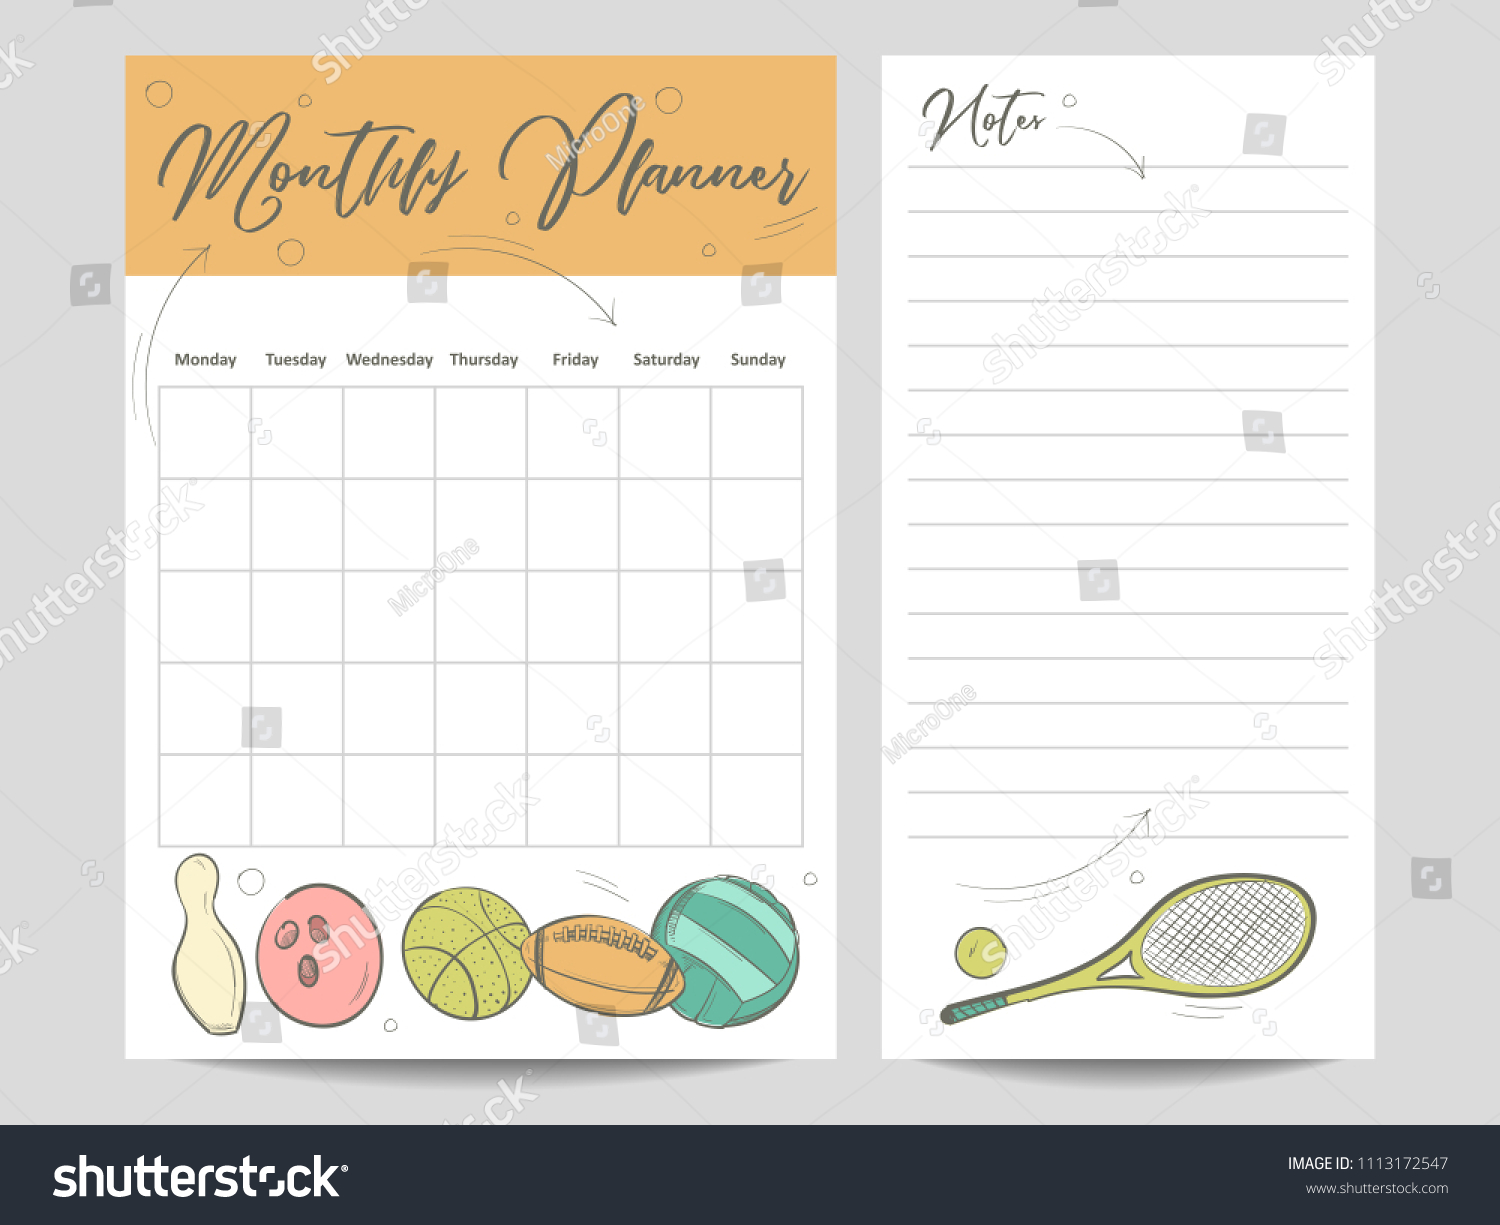 Monthly Planner Page Notes Template Sketch Stock Illustration